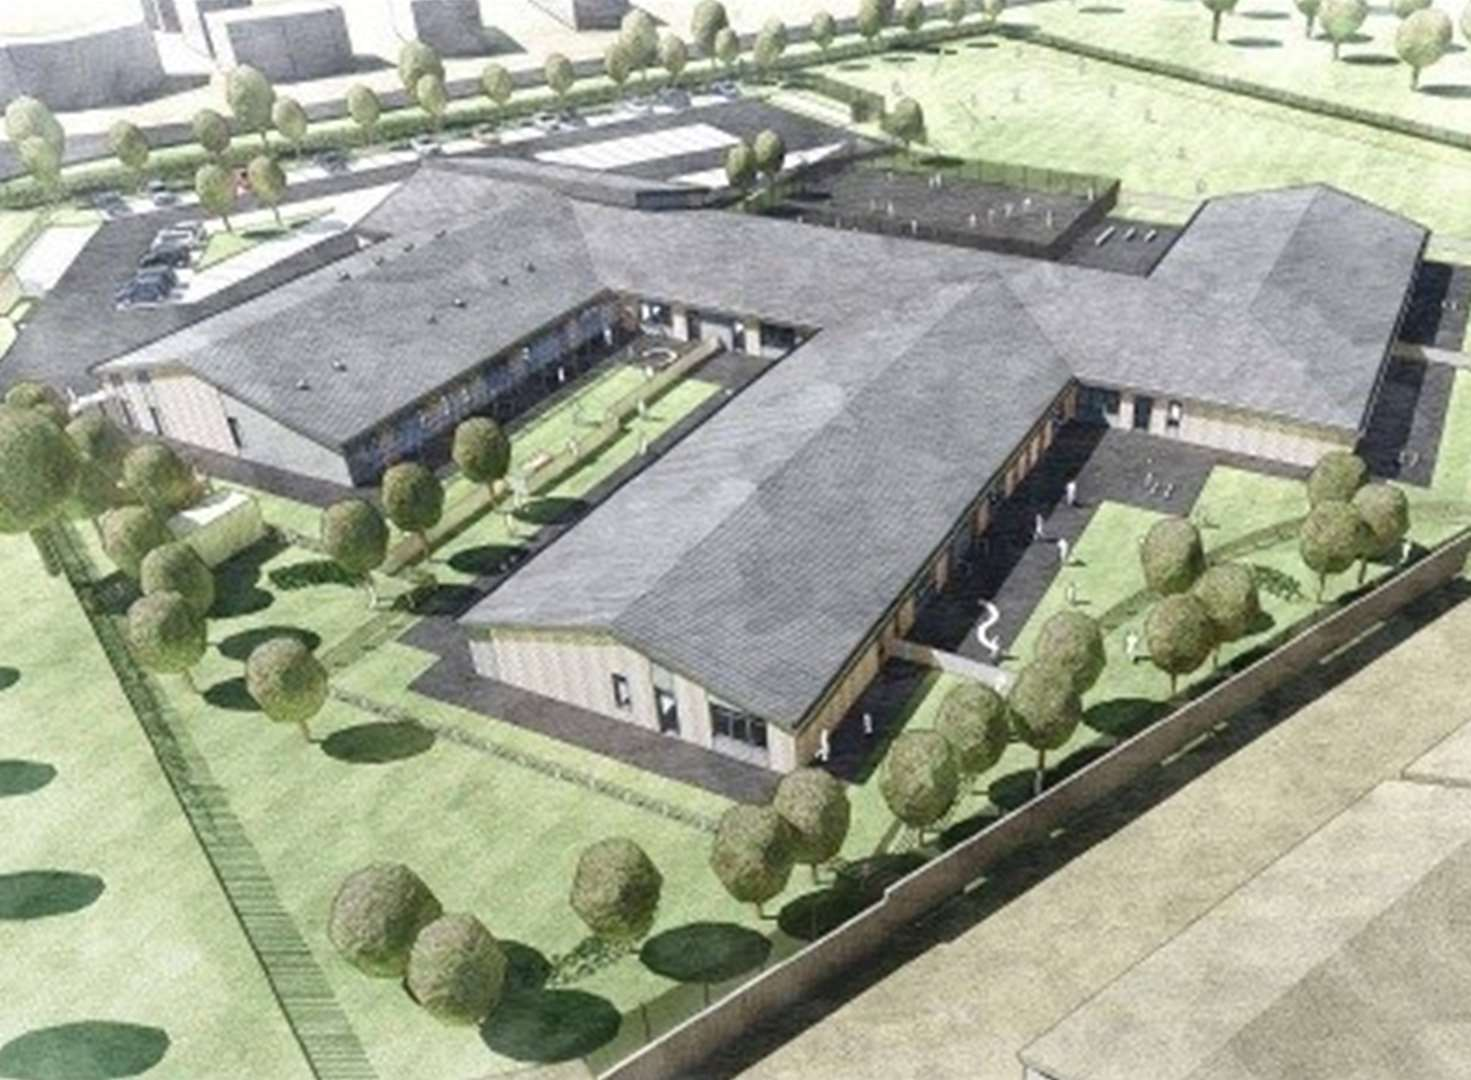 Exhibition unveils plan for new free school